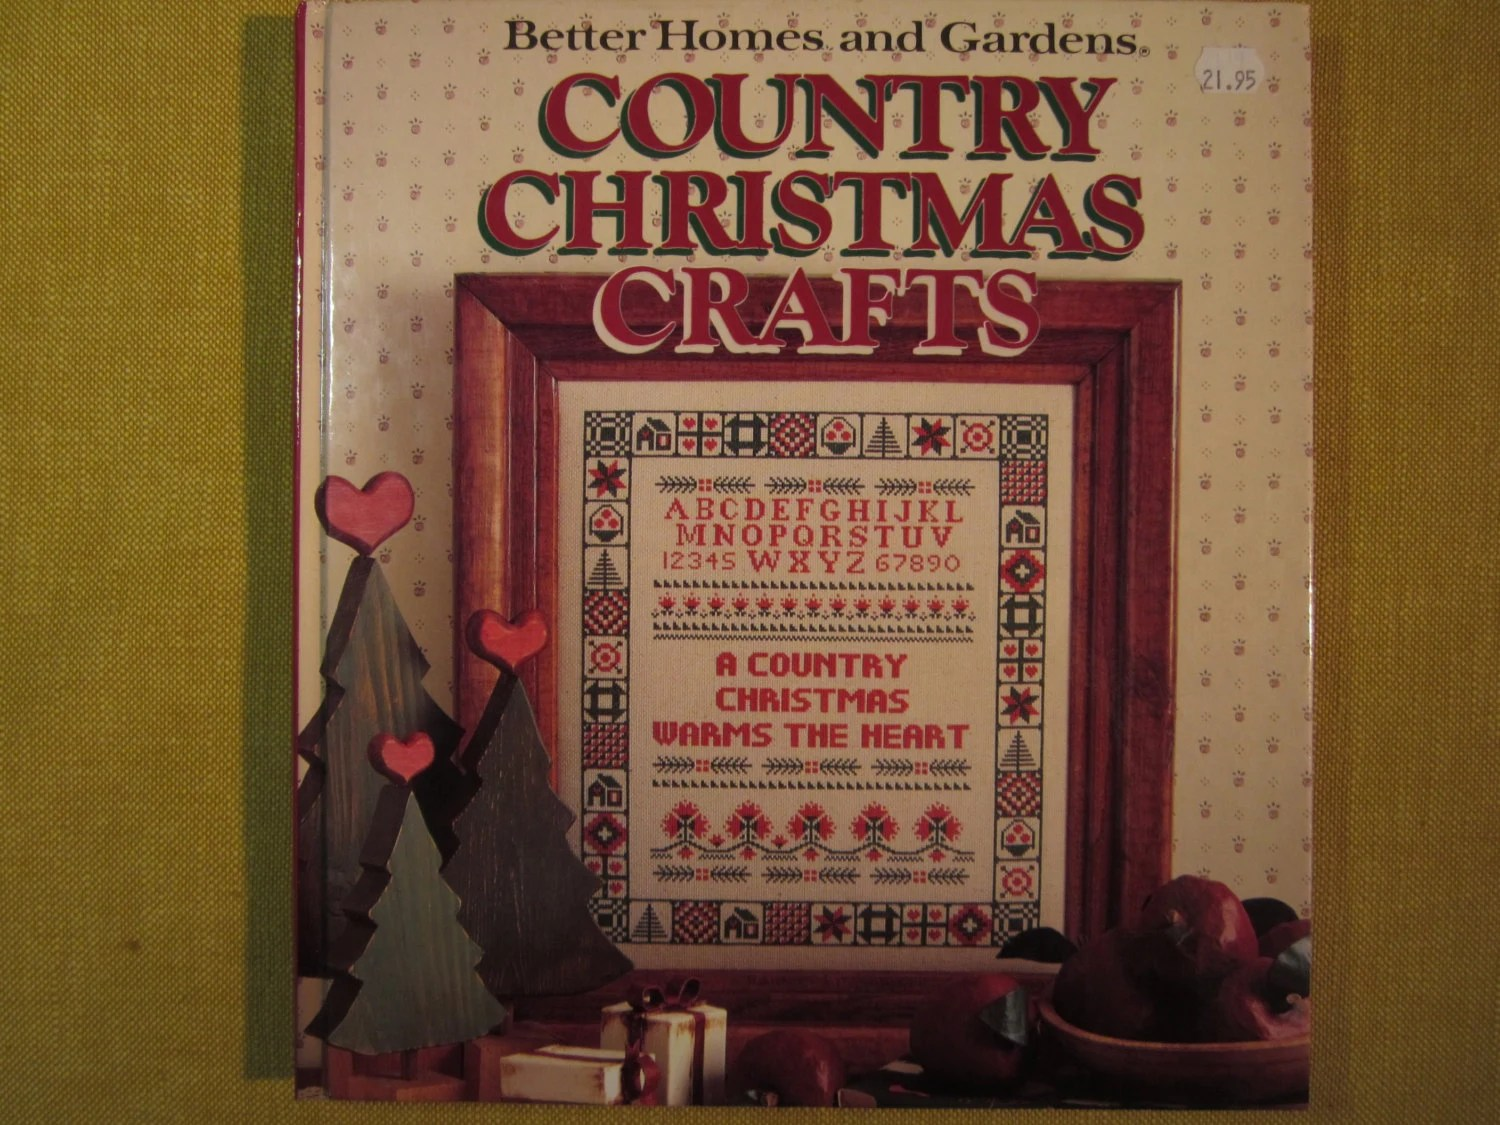 Better Homes And Gardens Country Christmas Crafts 1989 Cross